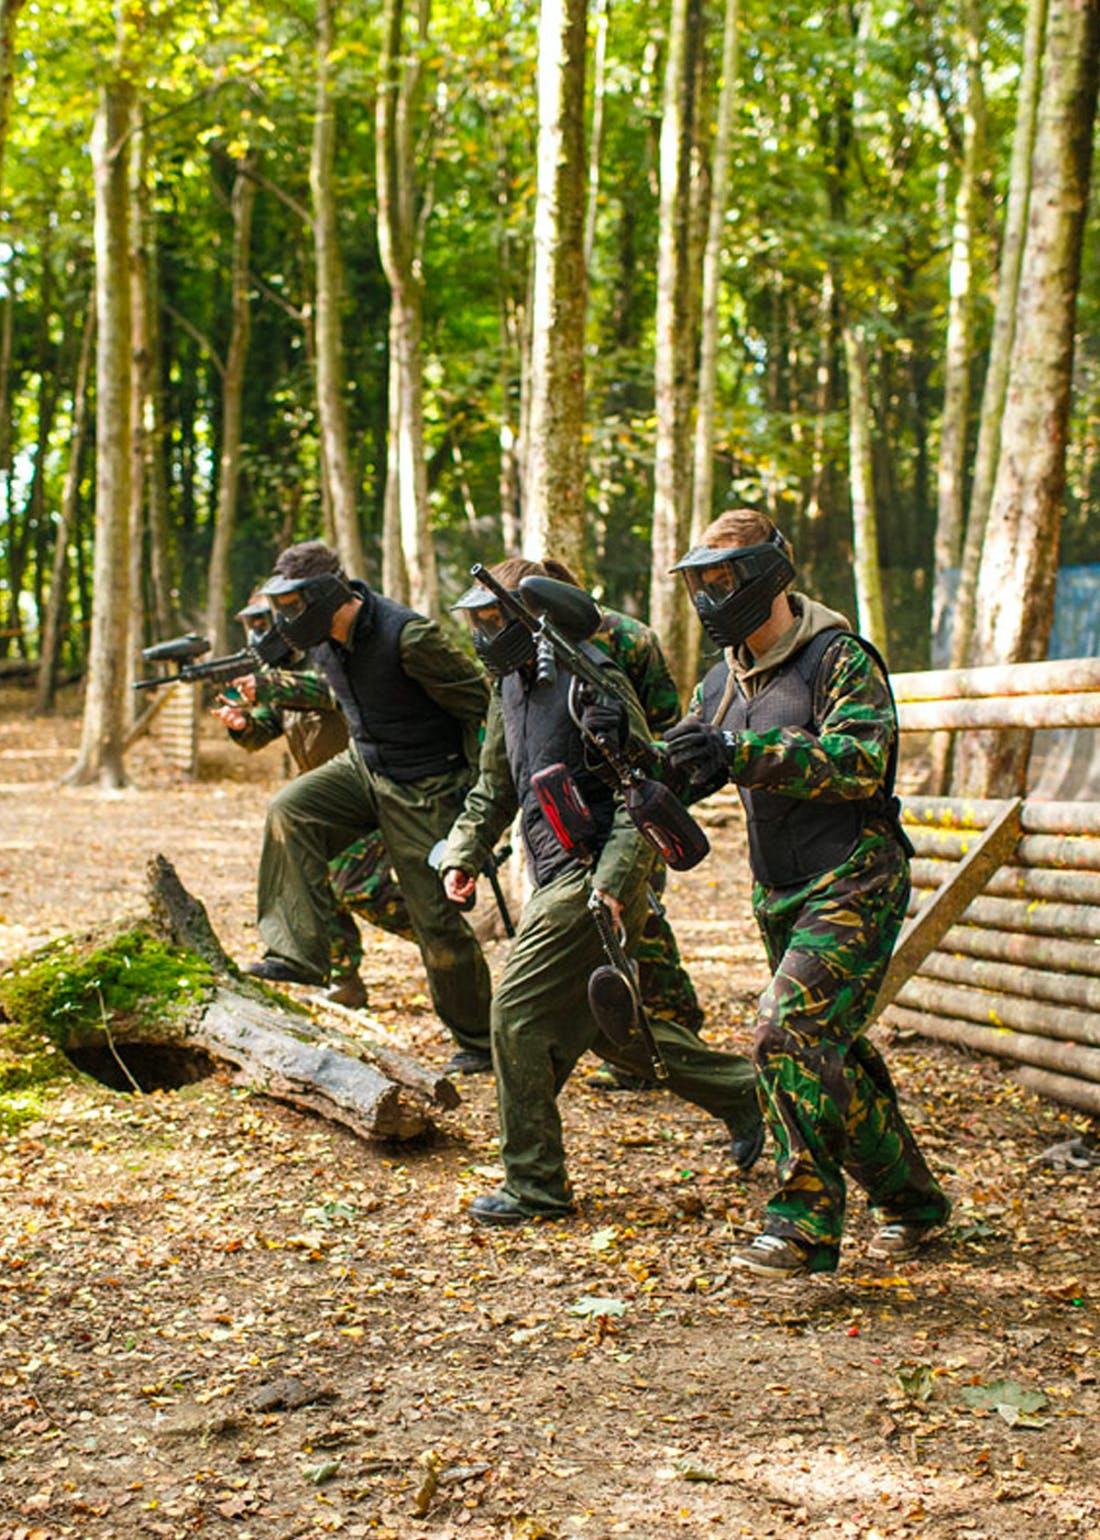 Virgin Experience Days Full Day Paintballing Experience for 2